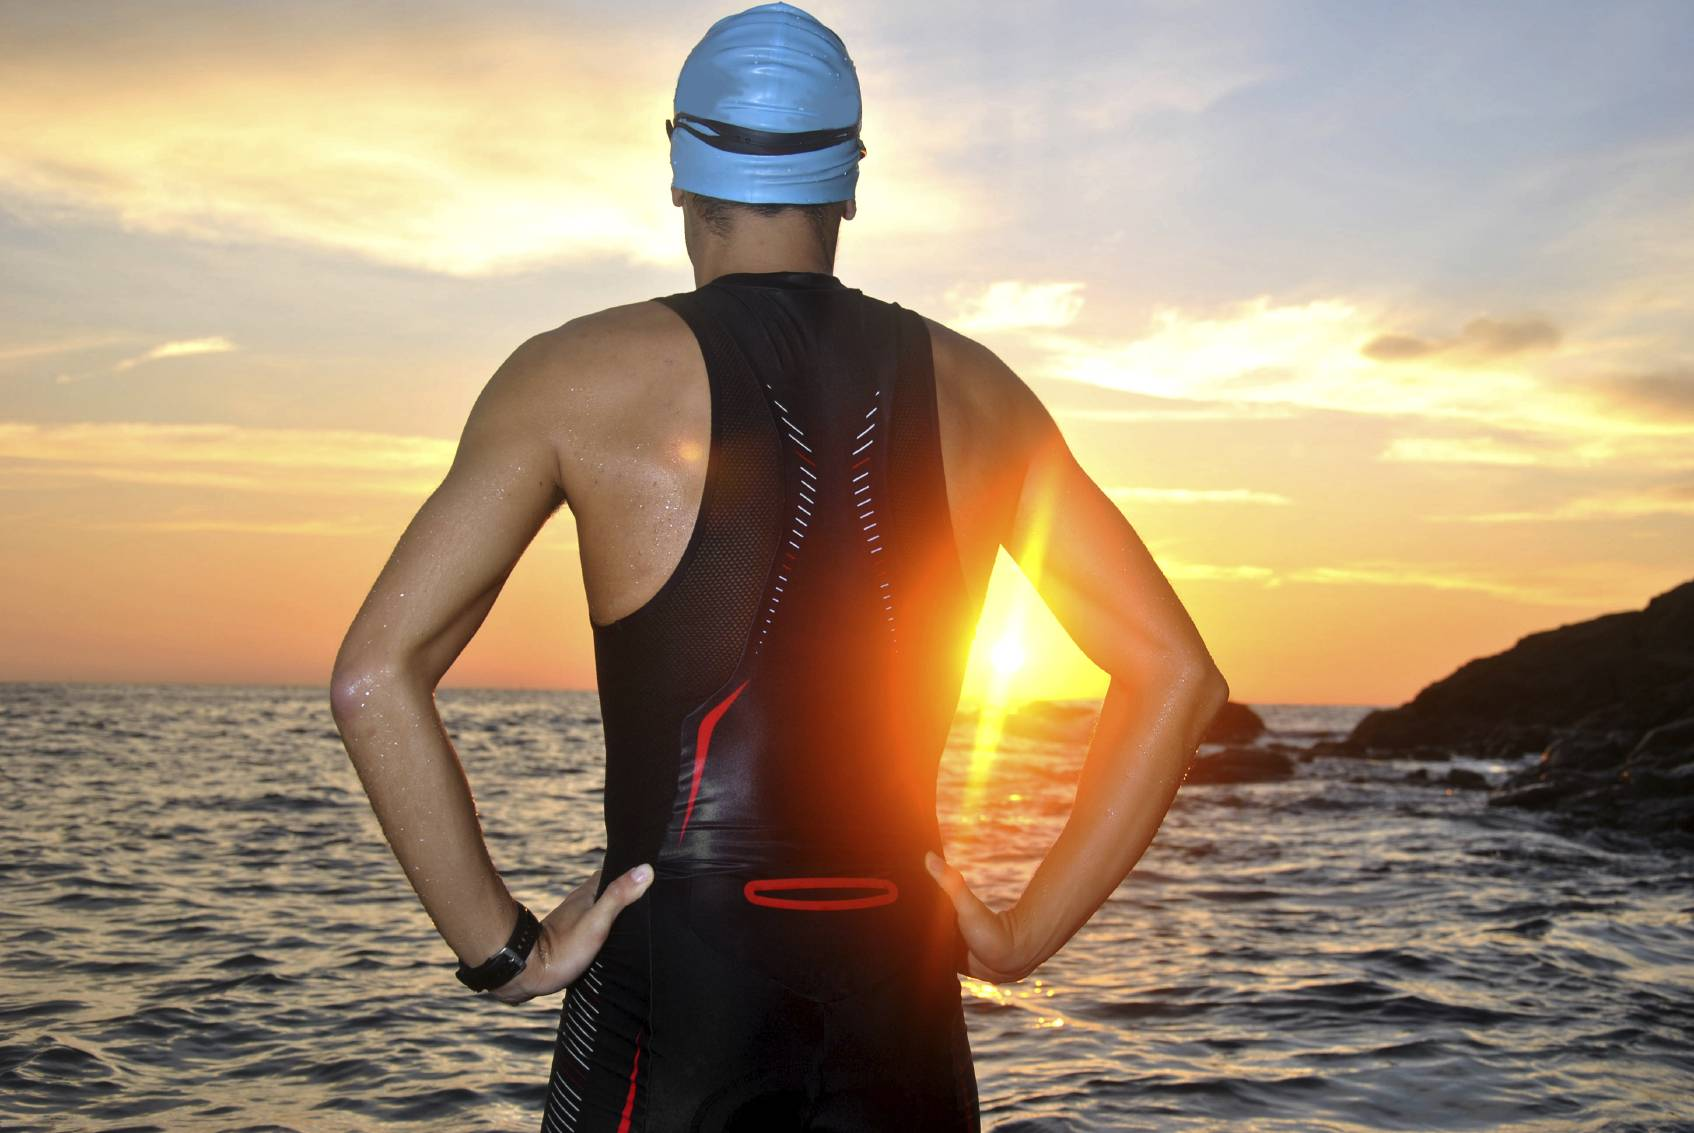 Ironman swimmer